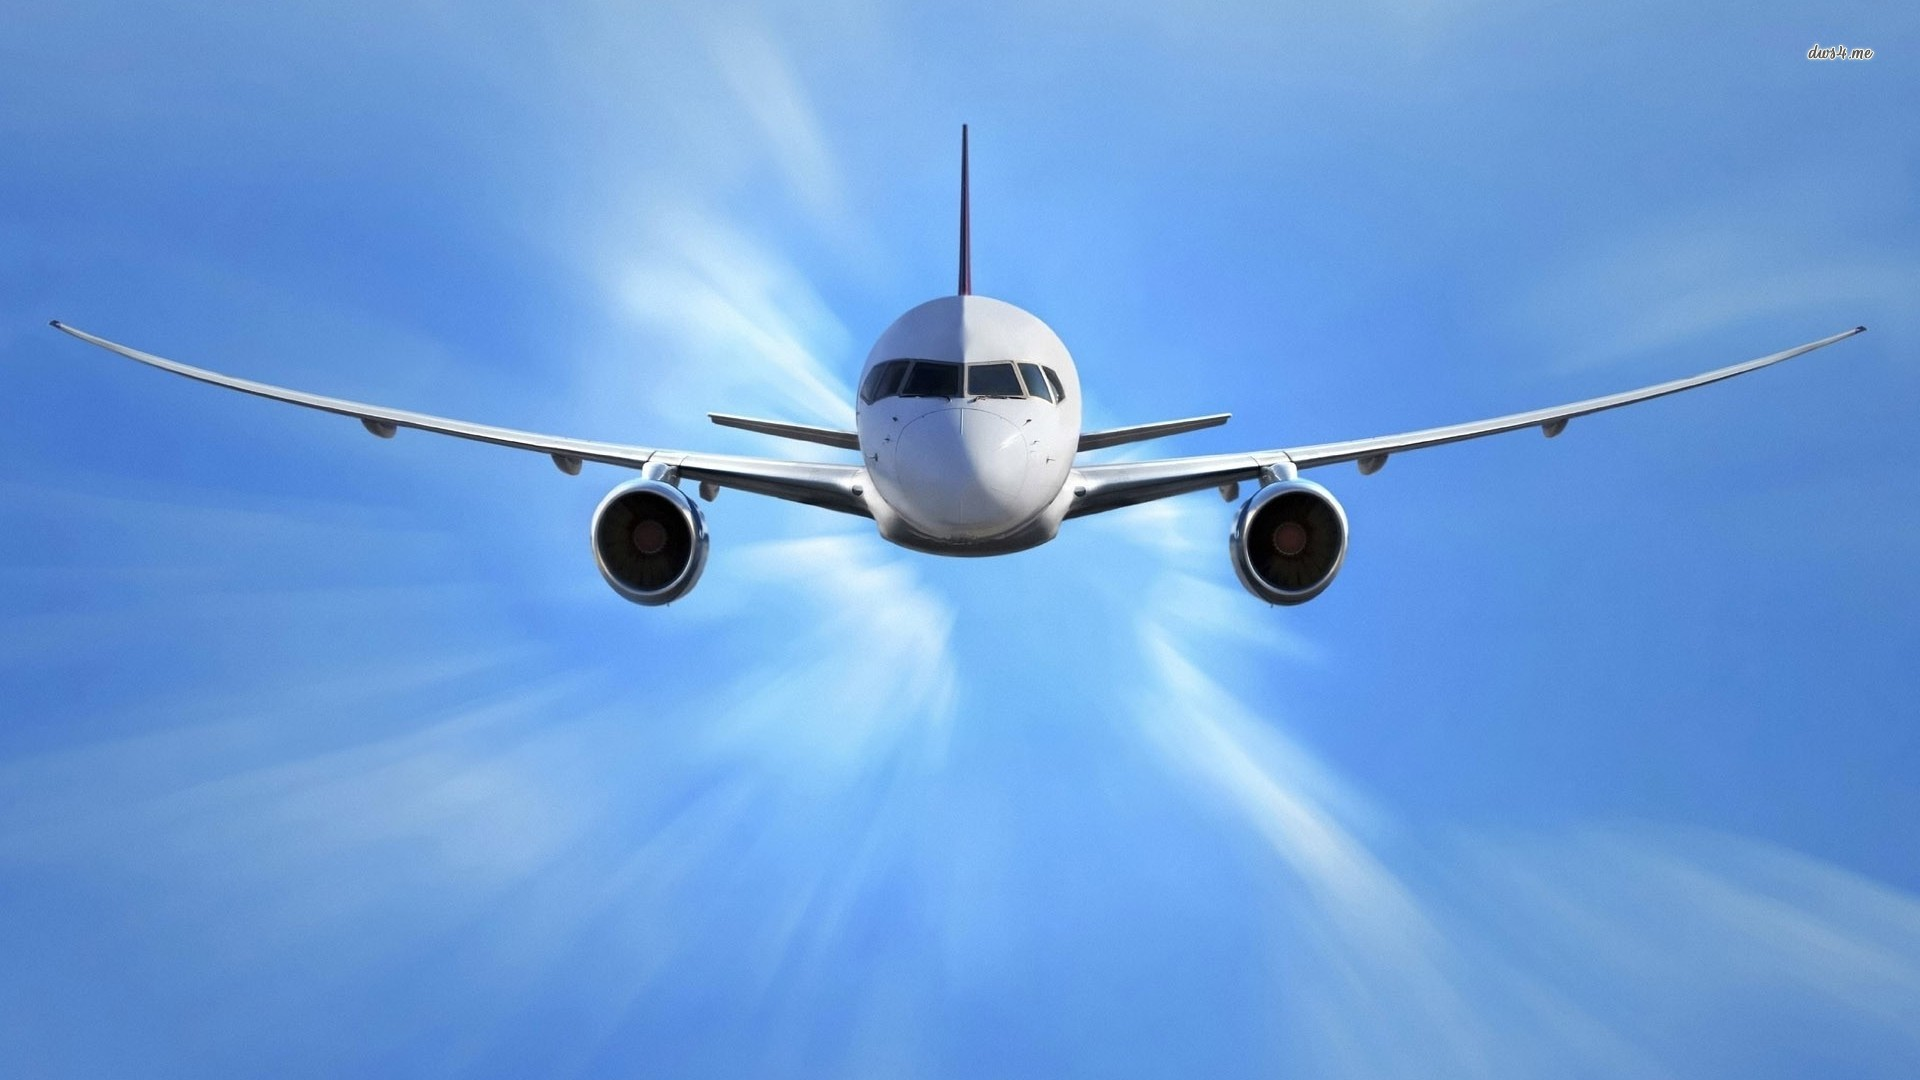 Free Hd 3d Wallpapers For Desktop 55 Hd Airplane Wallpapers Backgrounds For Free Download